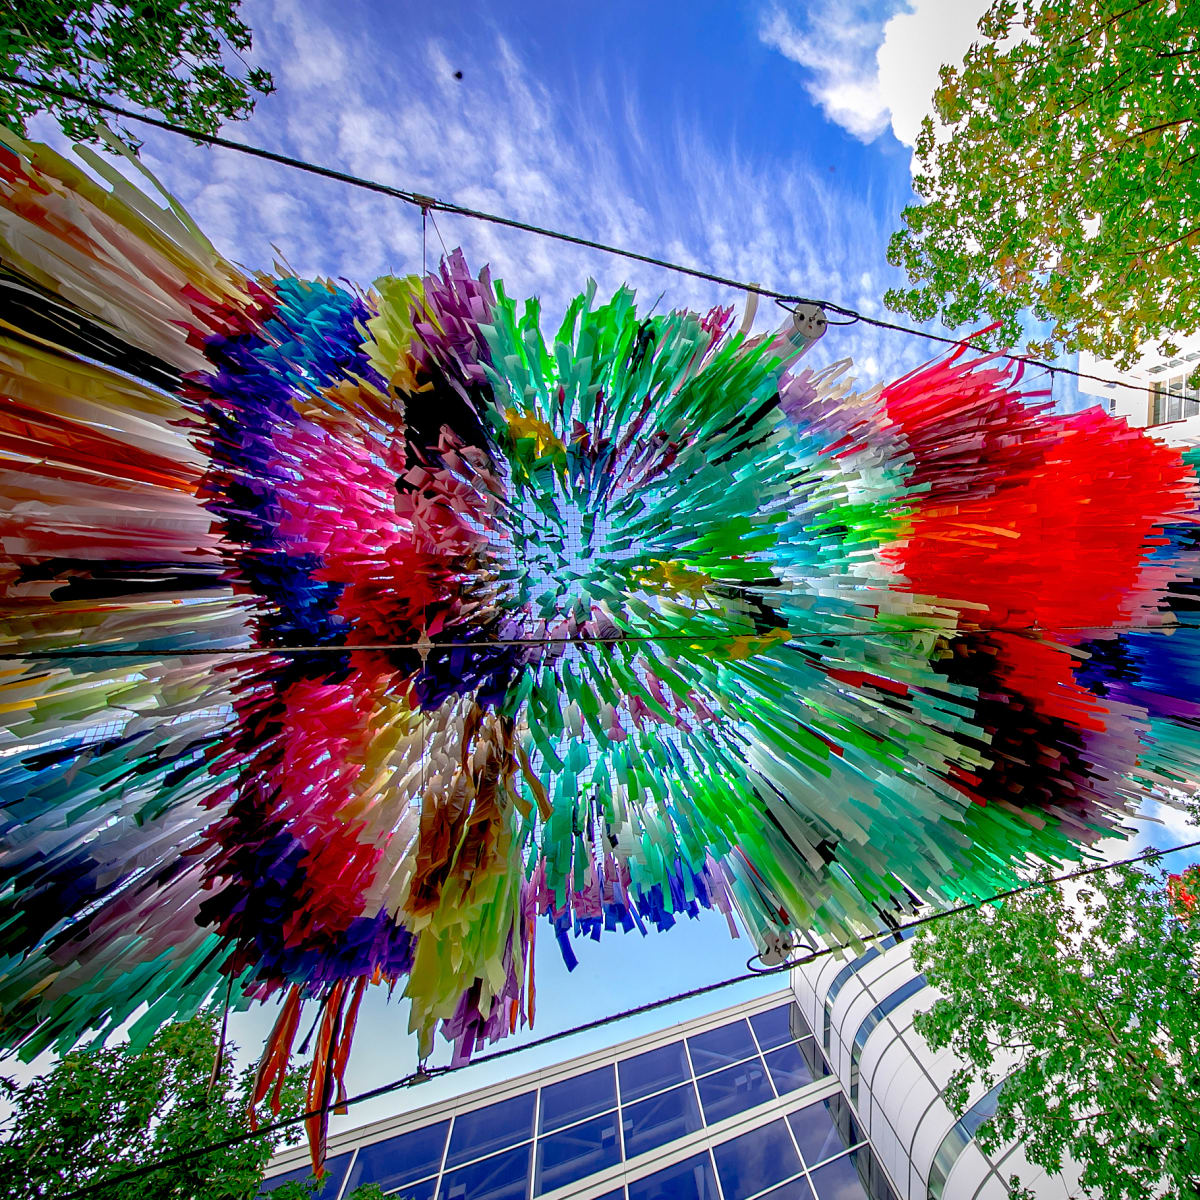 Houston, Discovery Green, Arcade art installation, August 2017